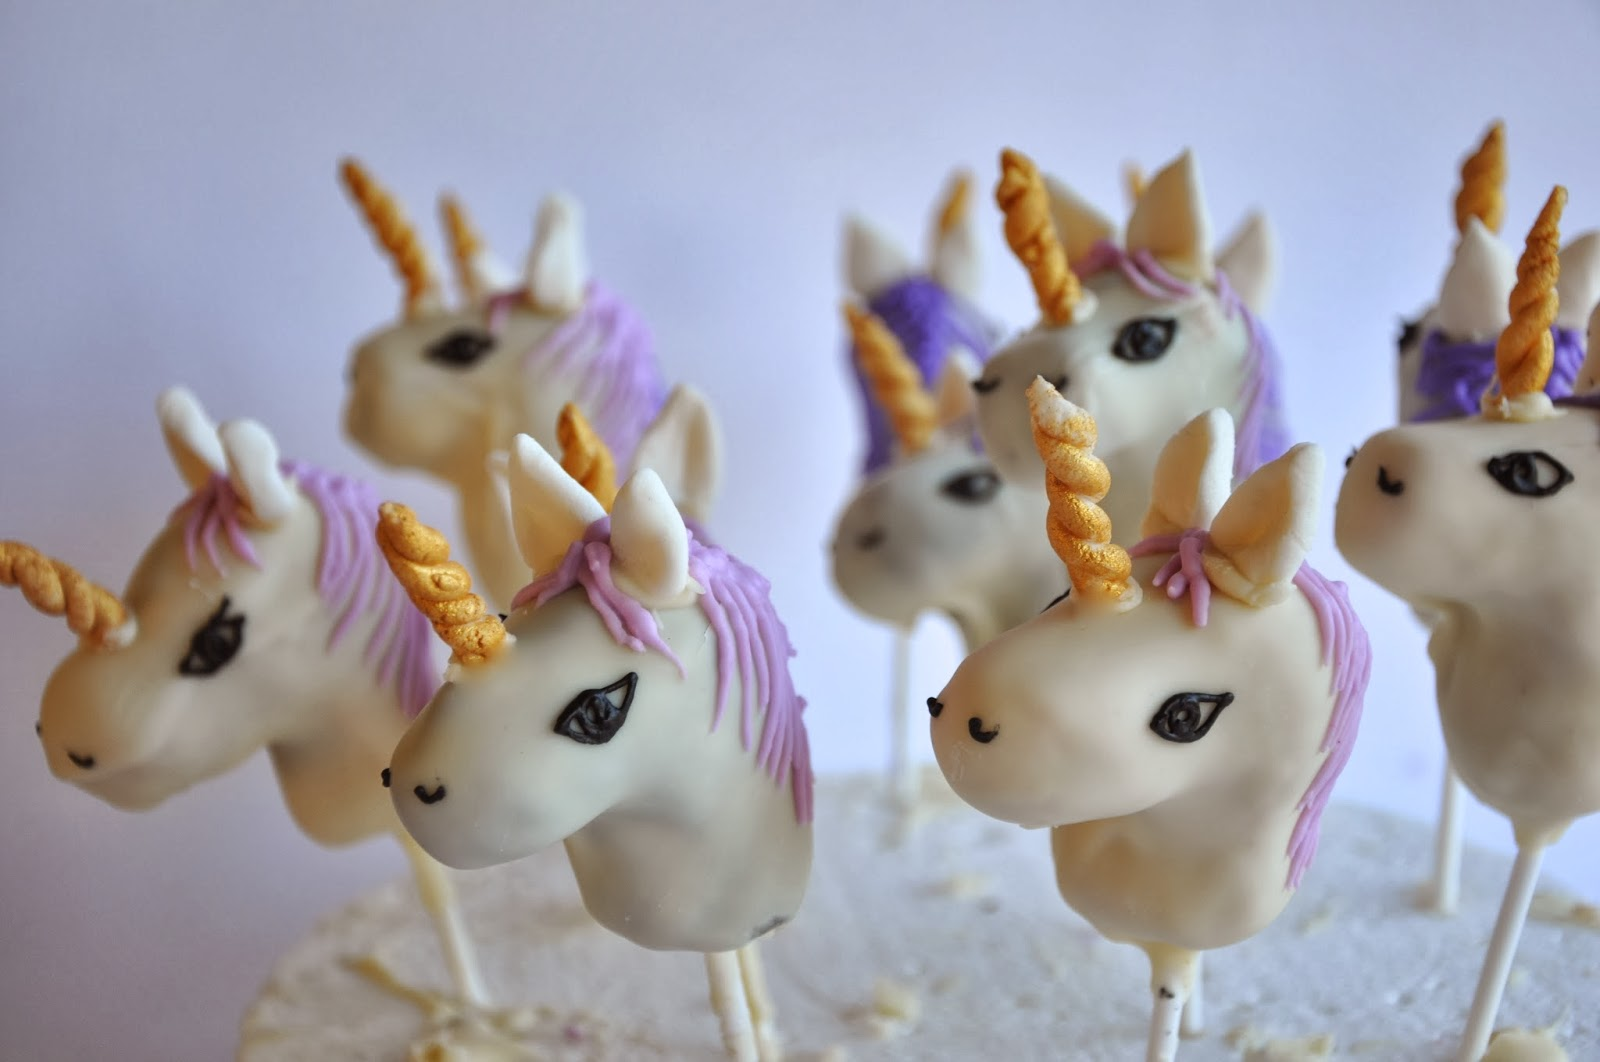 Cake pops durbanville unicorn cake pops for a kids birthday party in